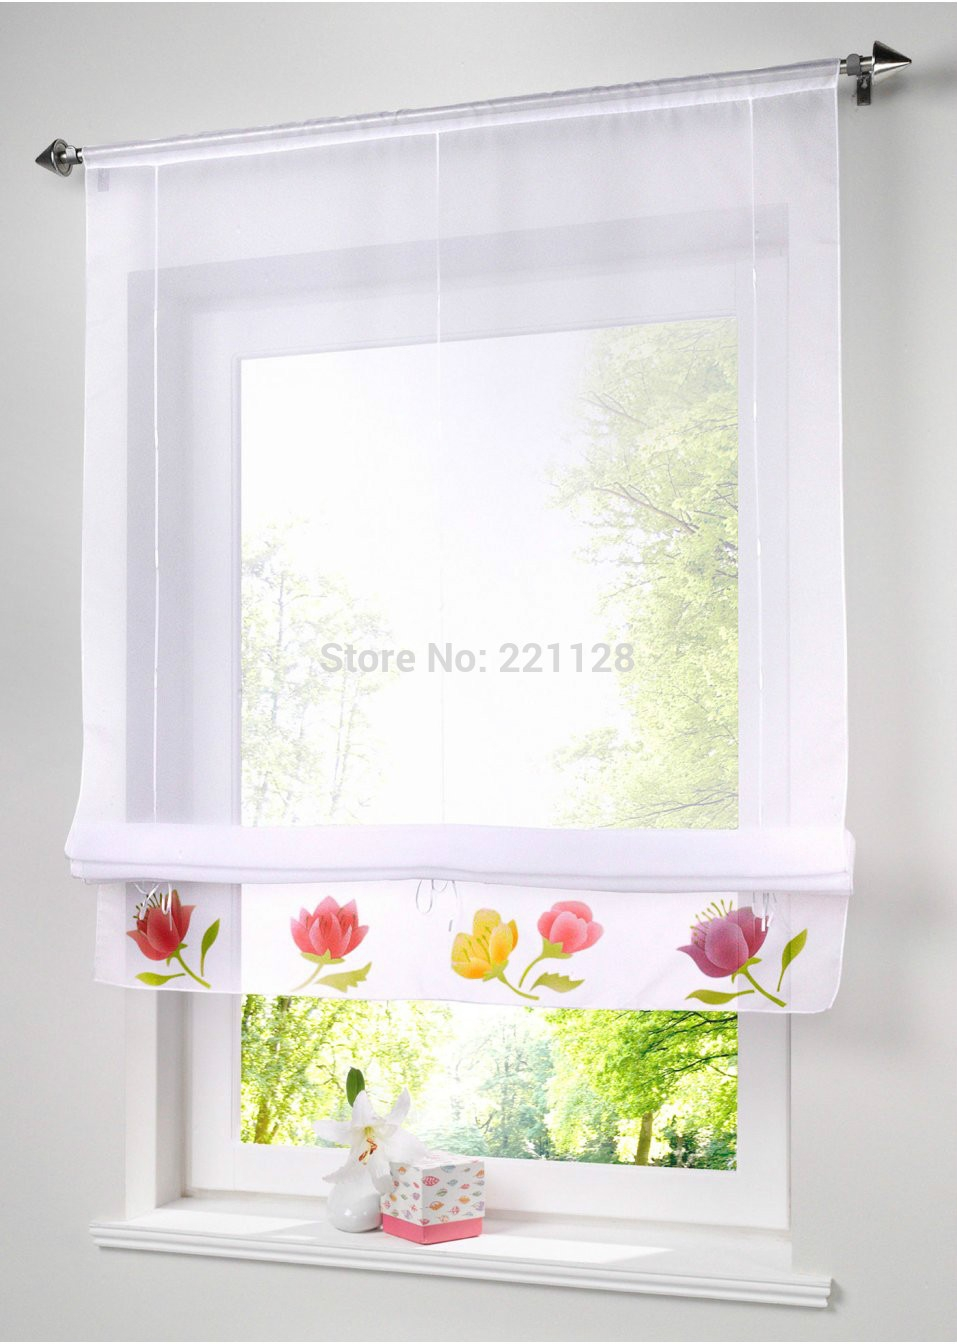 Online Get Cheap Bathroom Blinds Aliexpress Alibaba Group Intended For Bathroom Roman Blinds (Image 7 of 15)